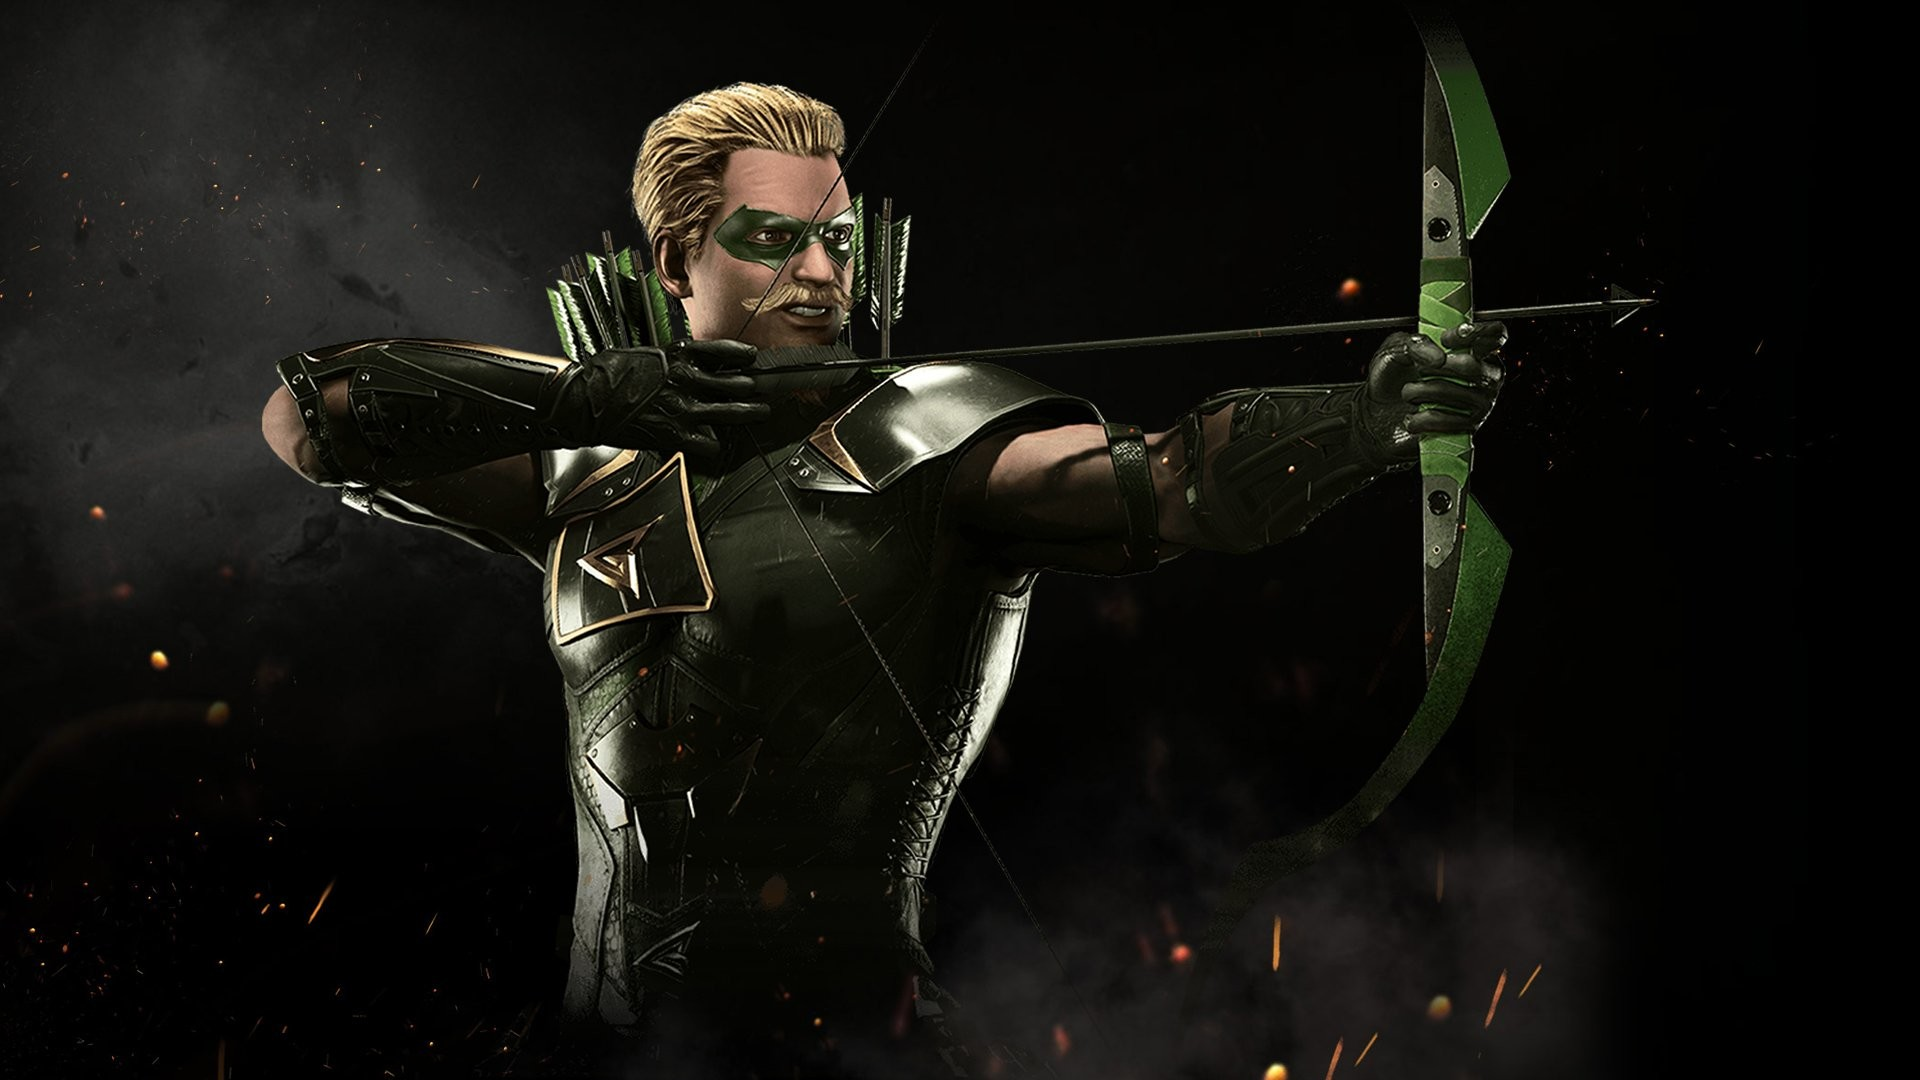 1920x1080 Video Game - Injustice 2 Green Arrow Wallpaper